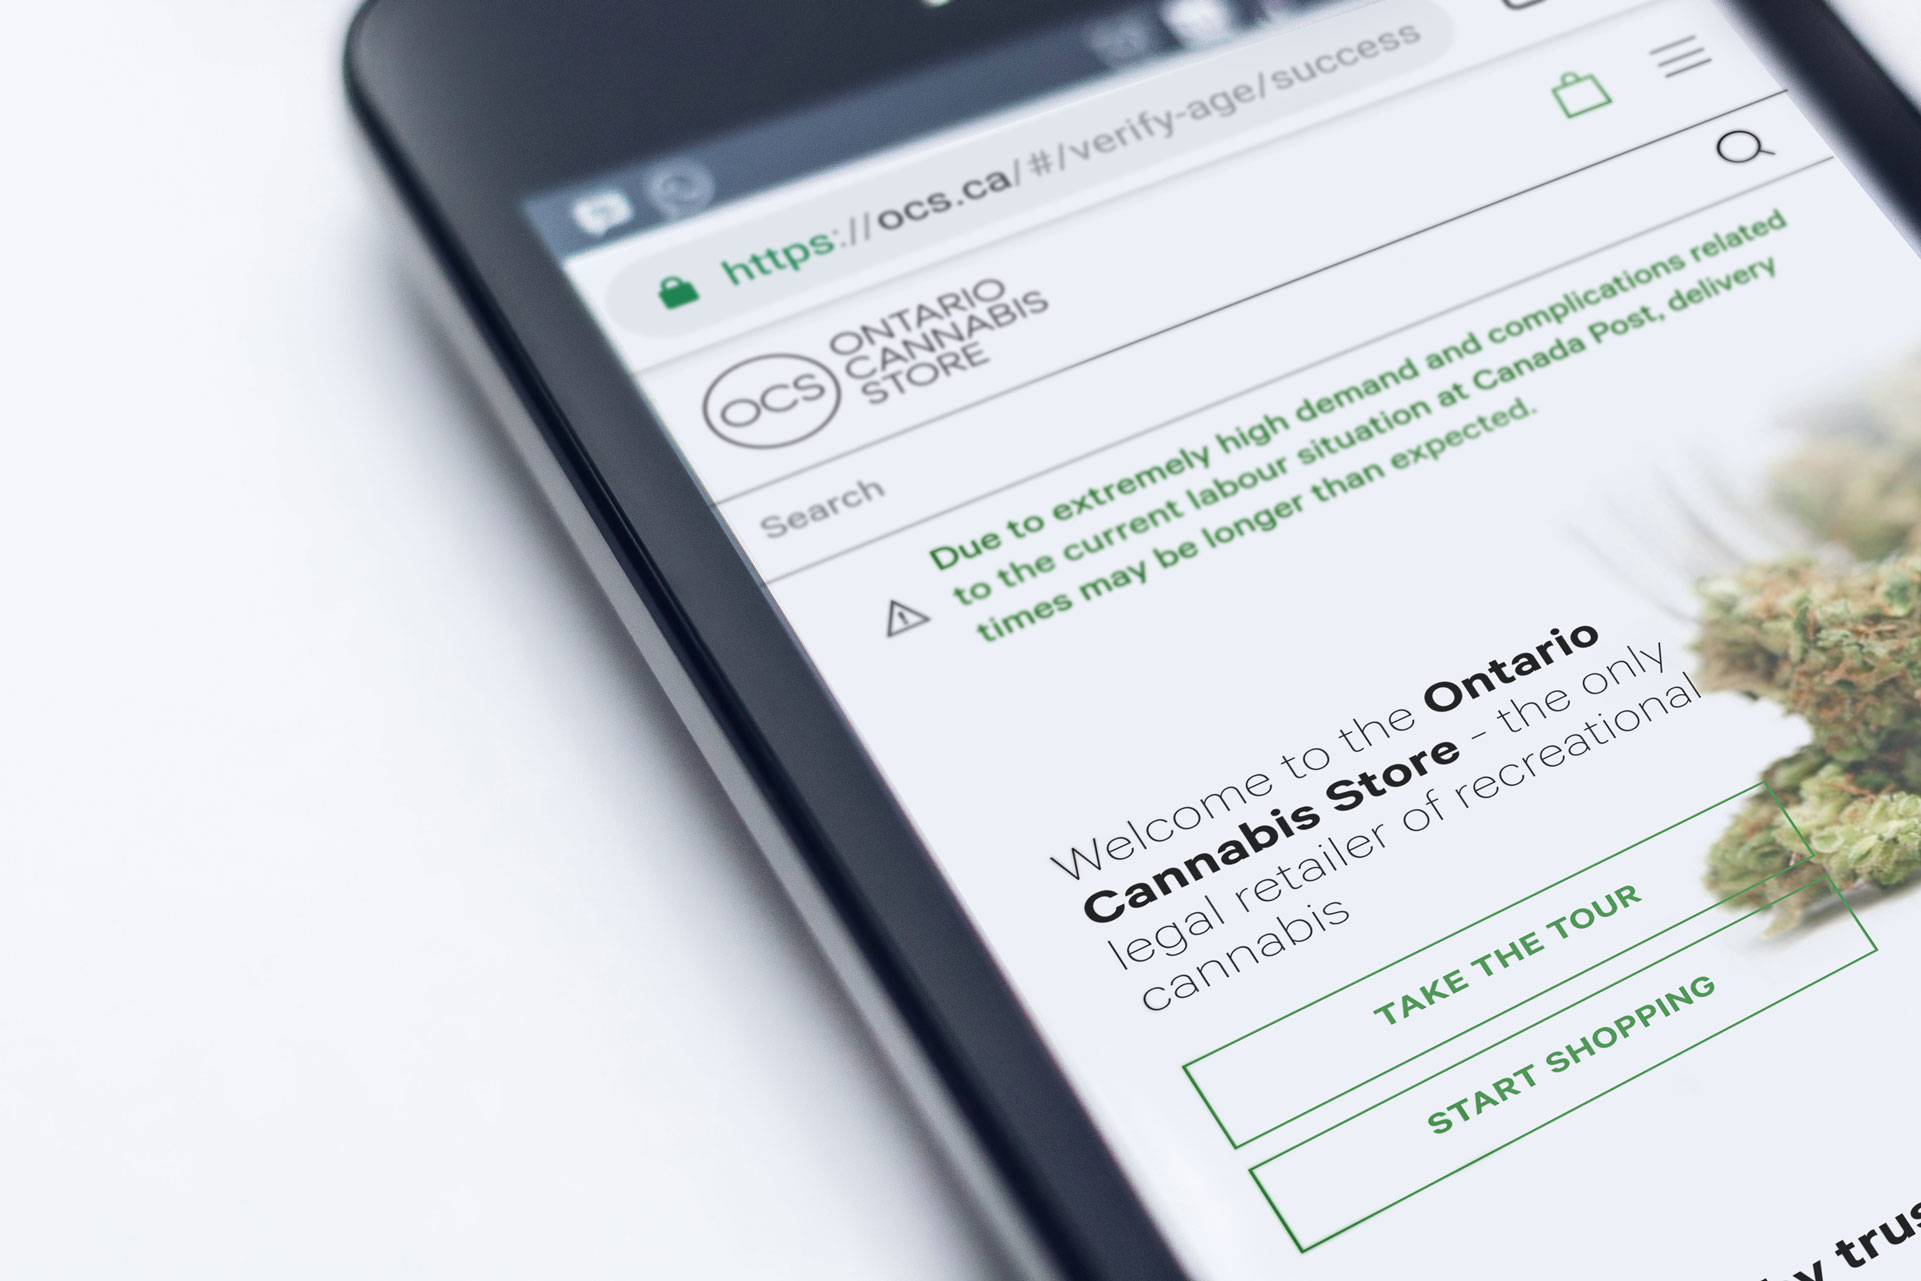 4,500 Ontario Cannabis Store Customers Affected by Privacy Breach thumbnail